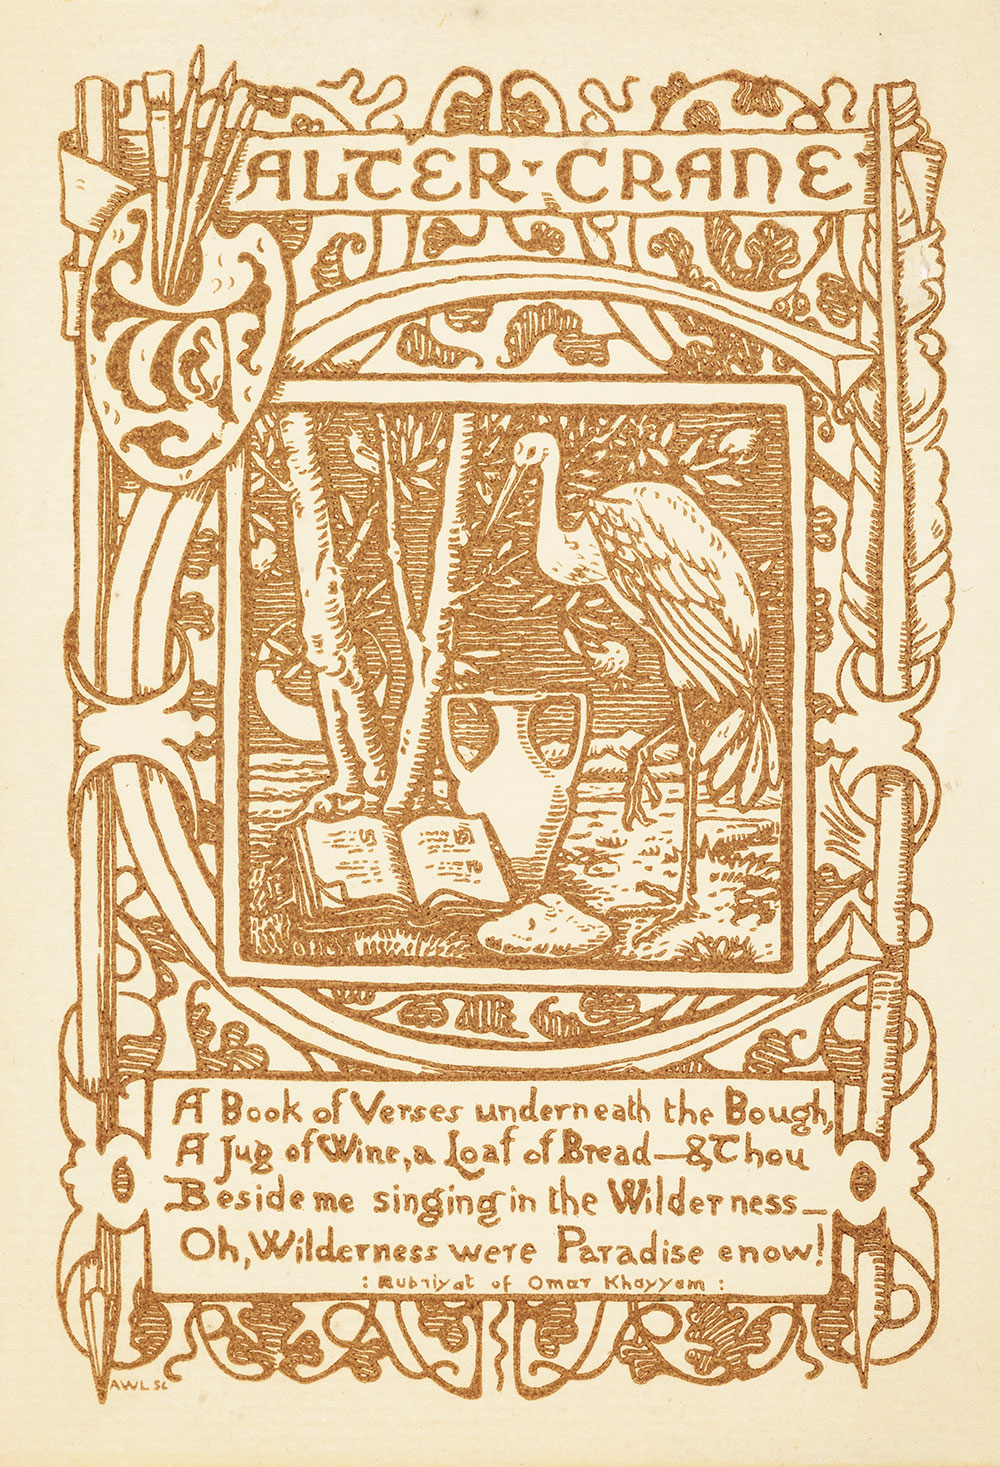 Bookplate from Walter Crane's book of verses